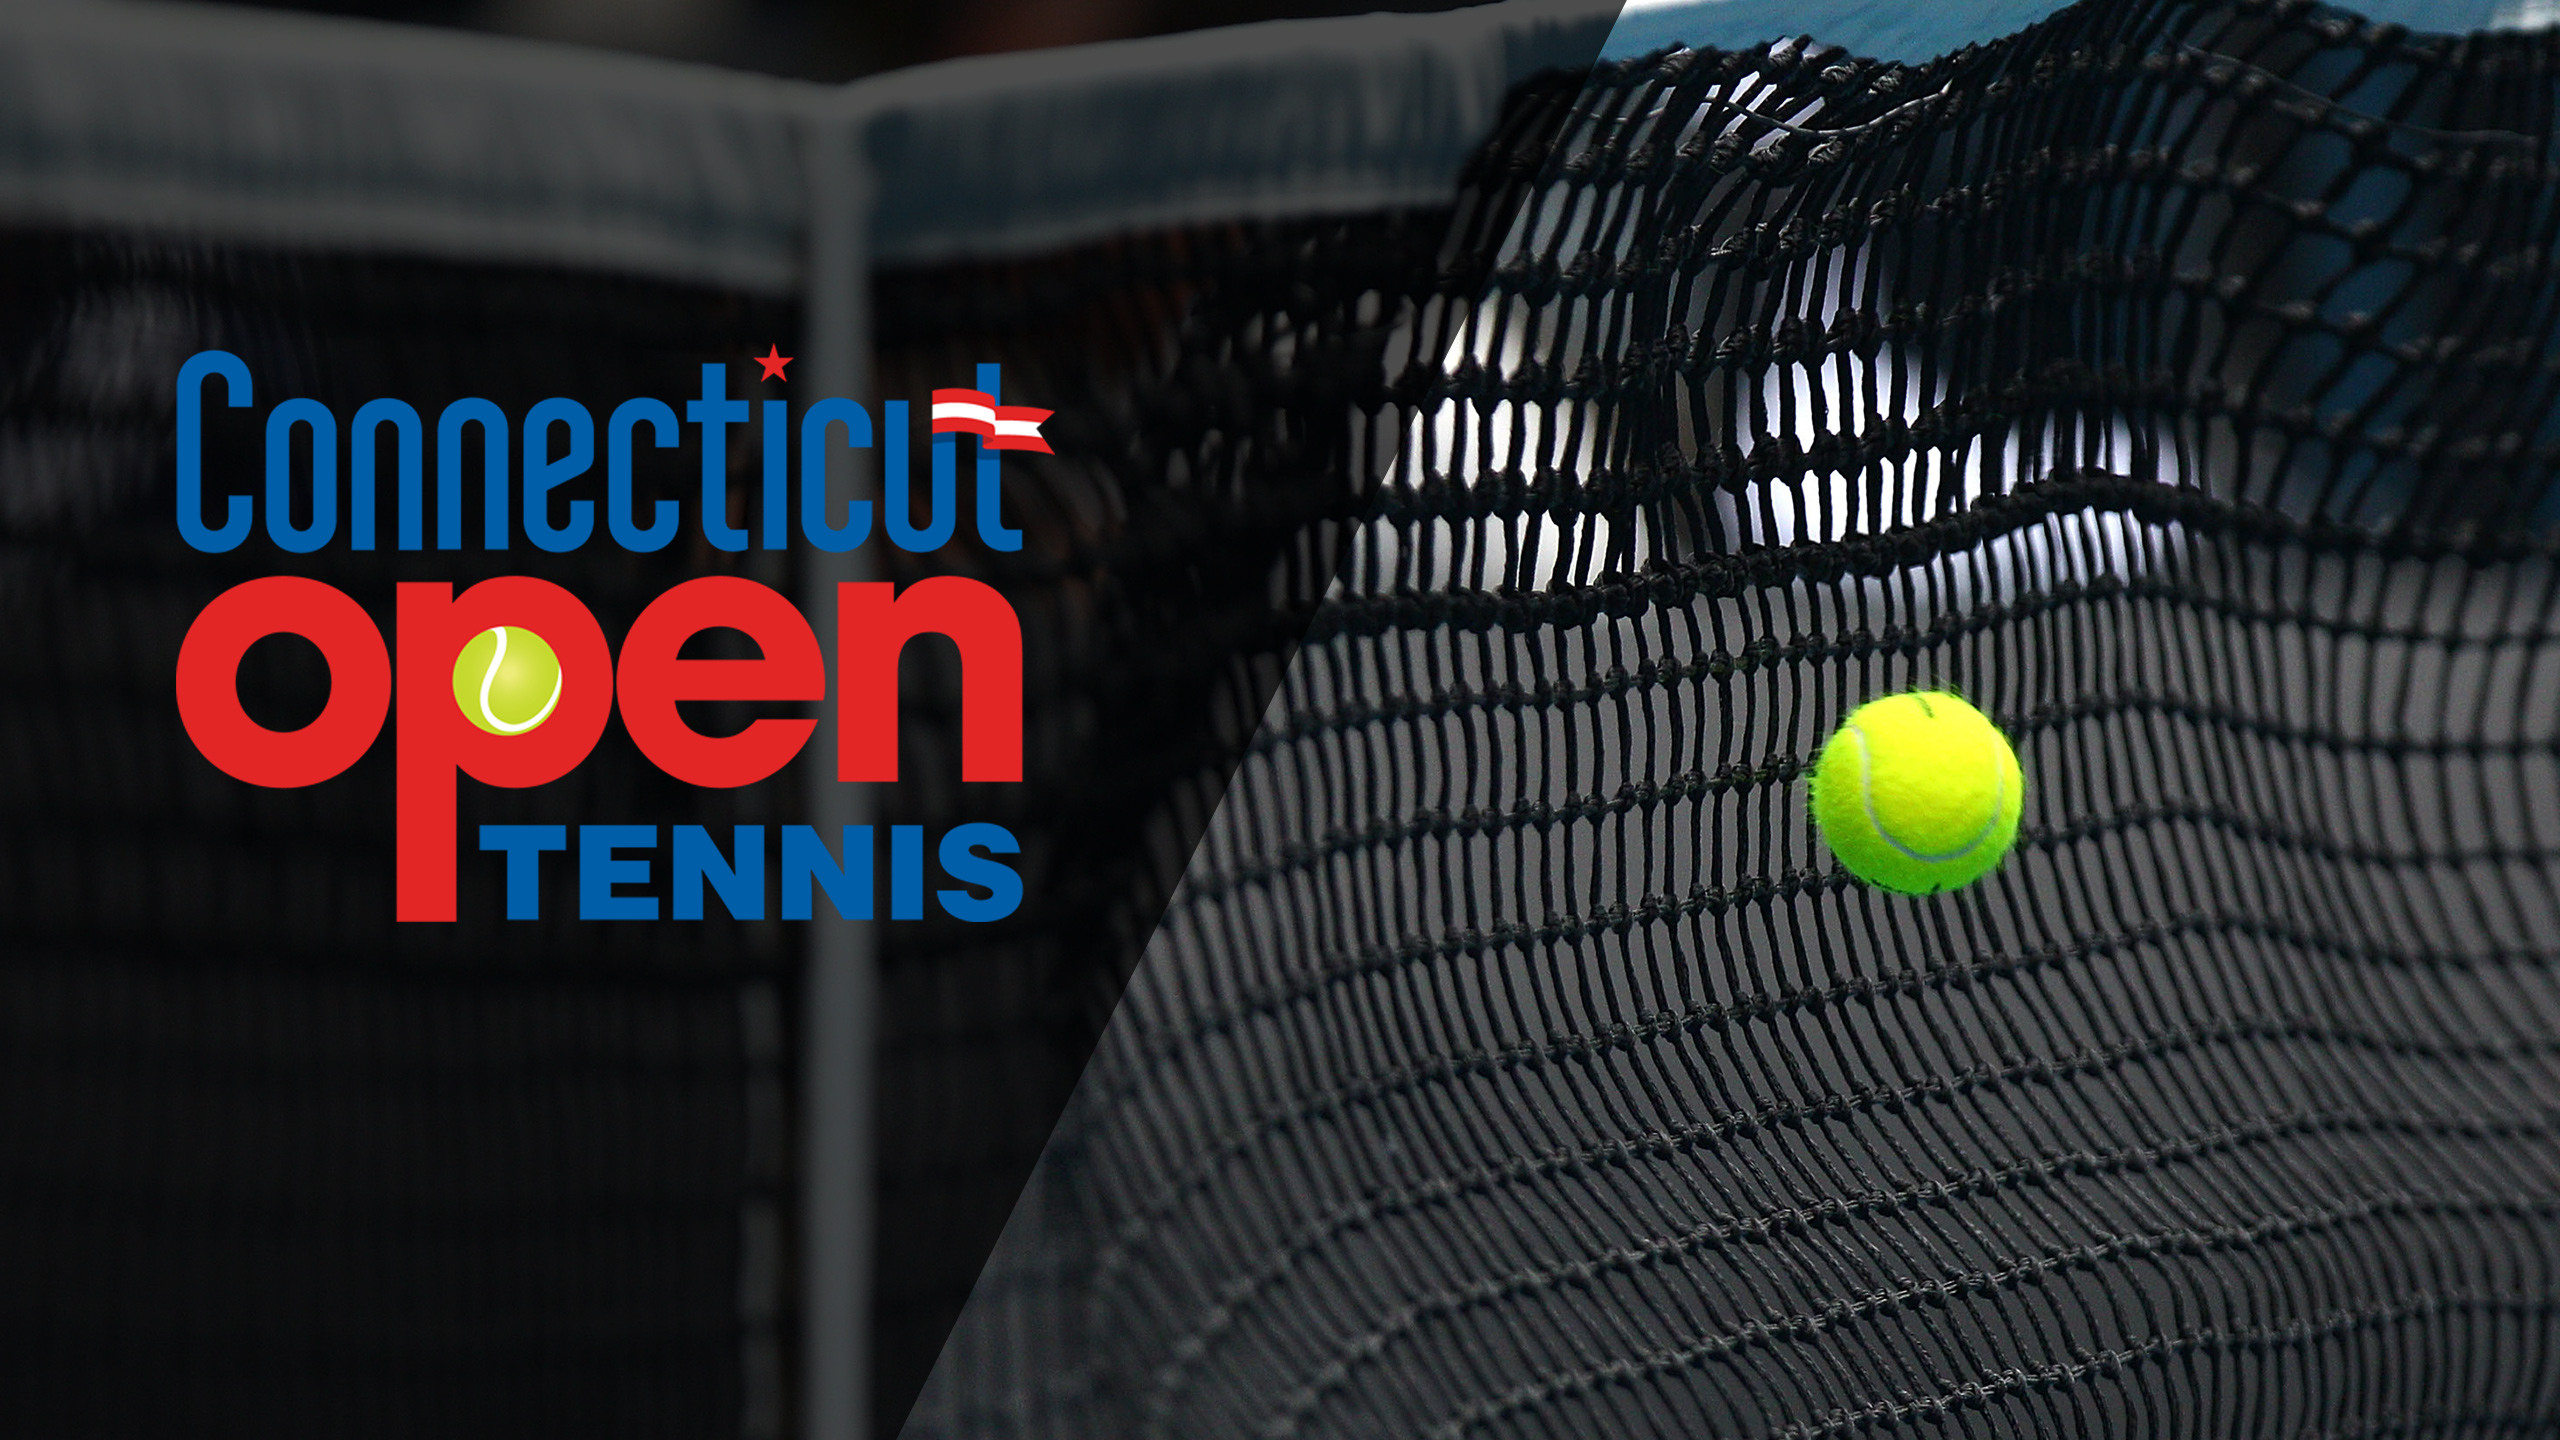 2018 US Open Series - Connecticut Open (First Round)